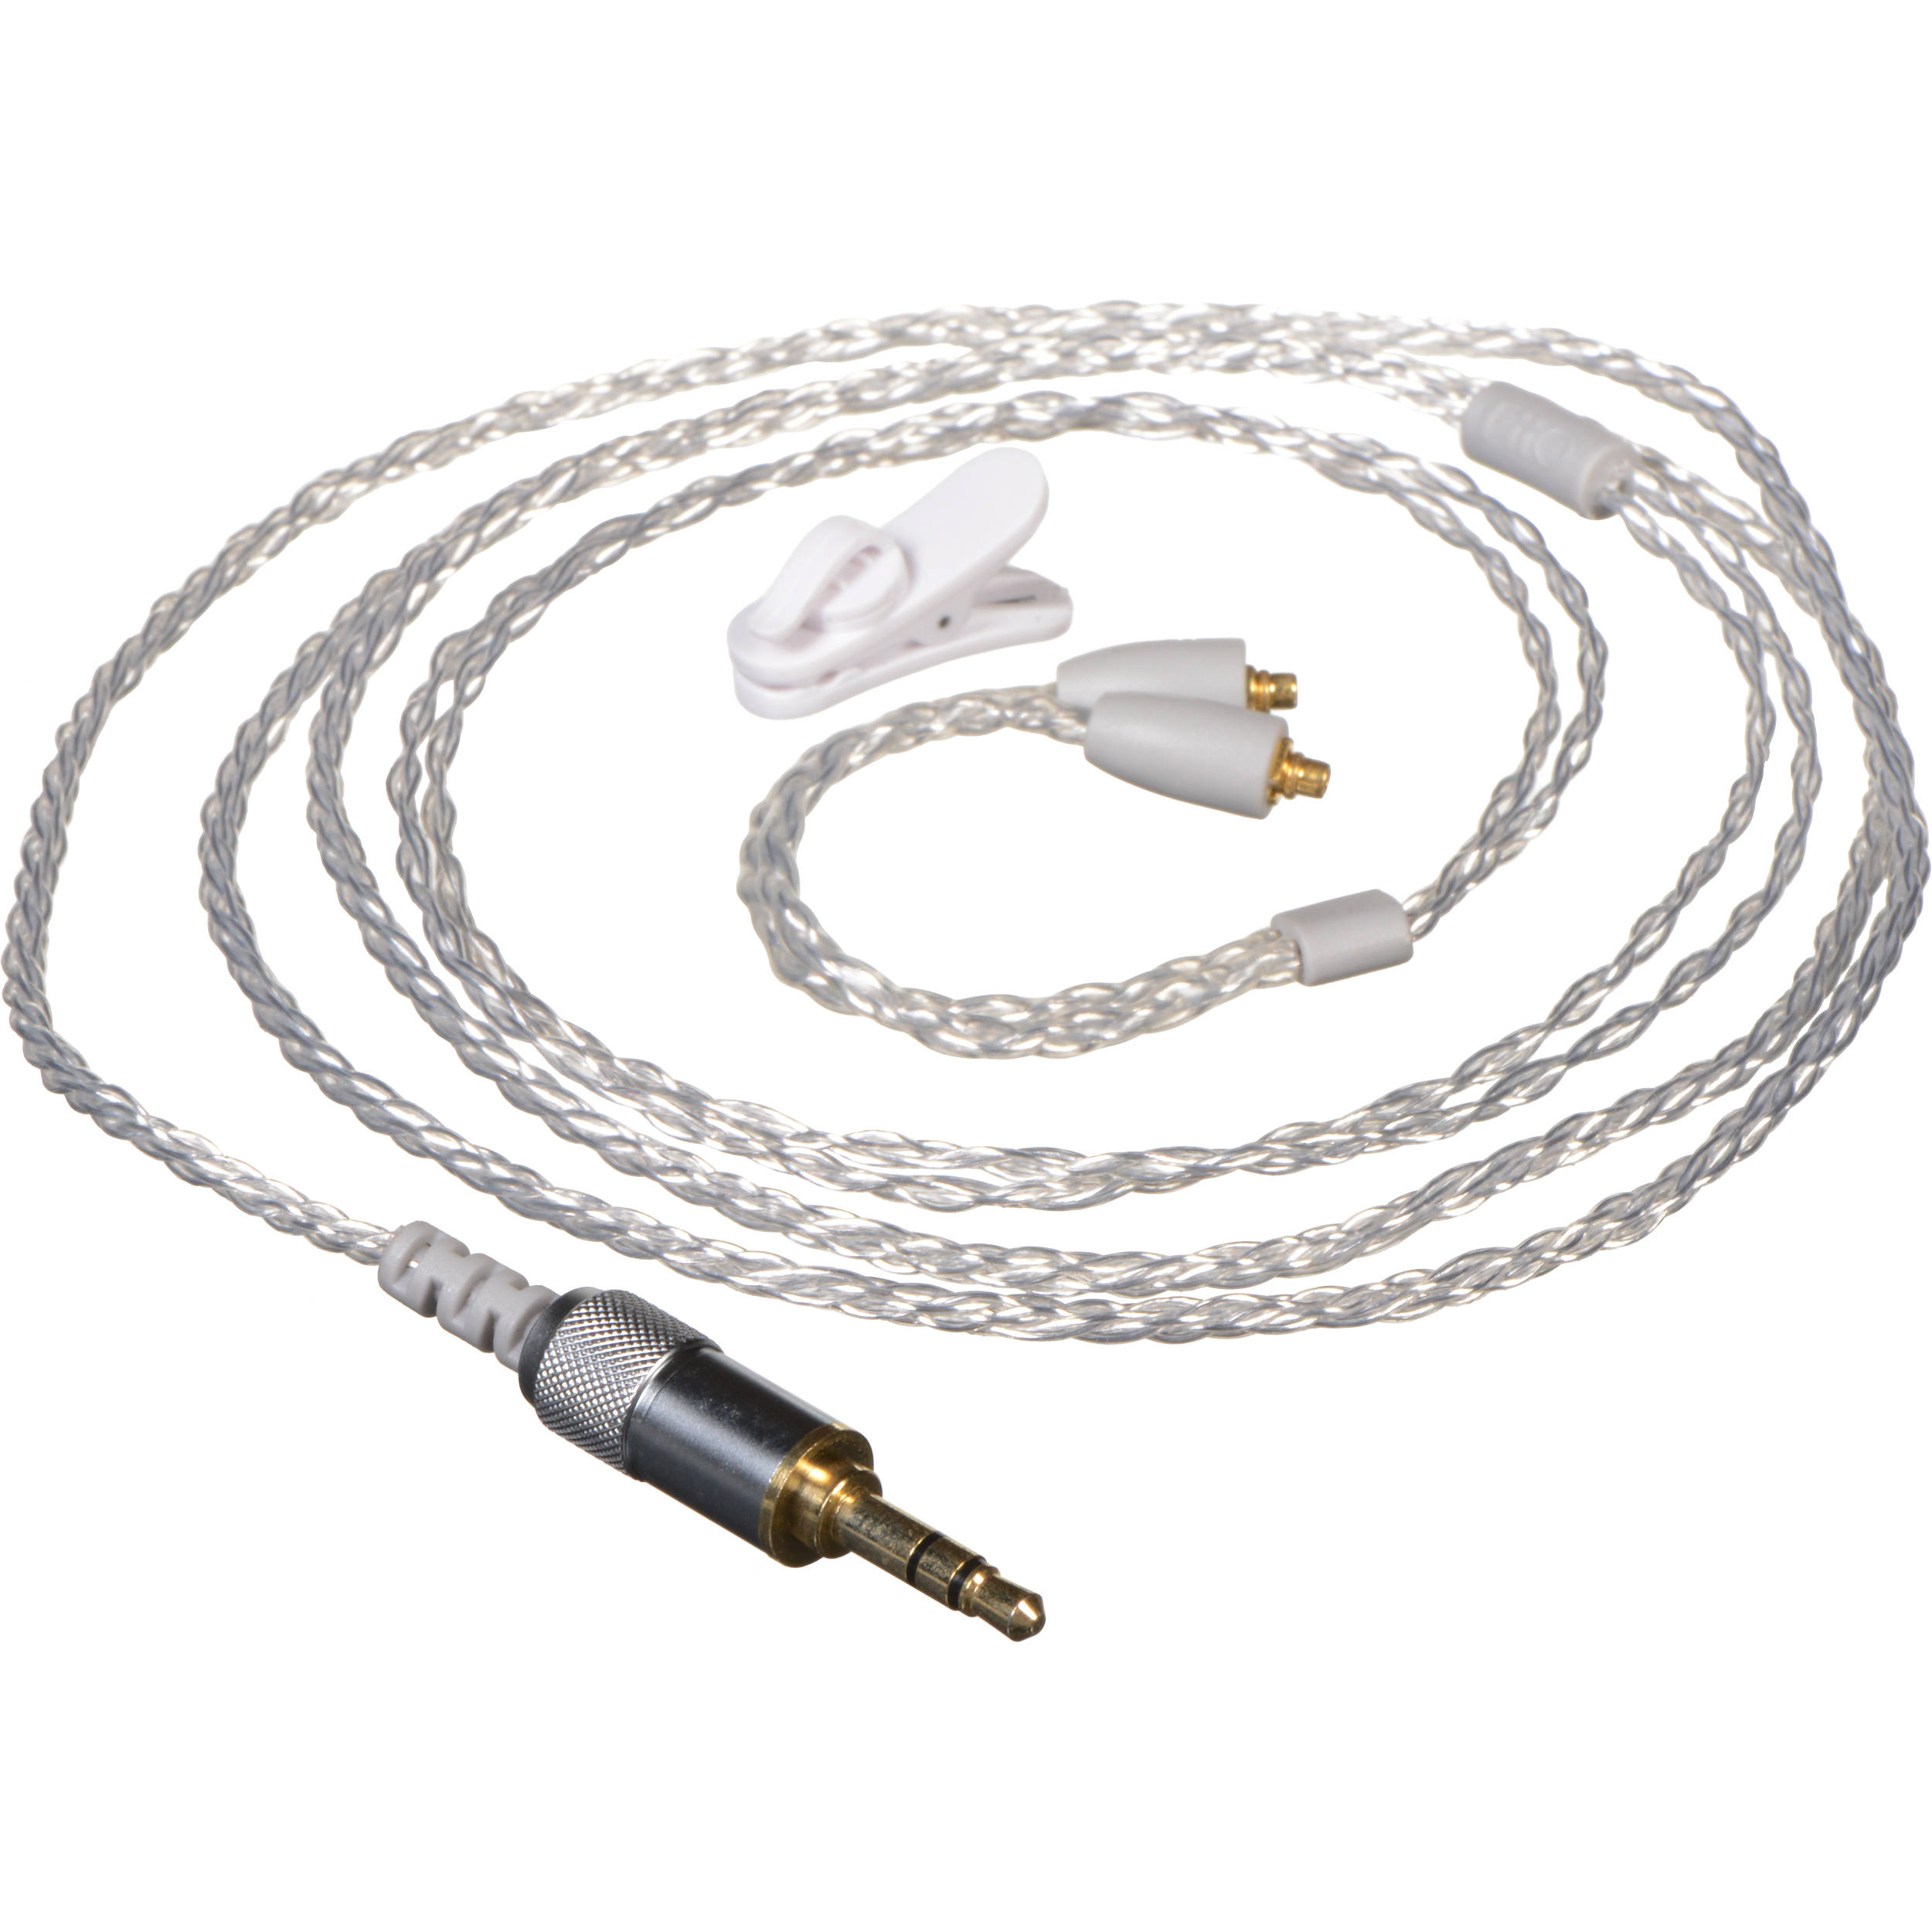 Fiio Rc Se1 3 5mm Earphone Replacement Cable Rc Se1 B Amp H Photo